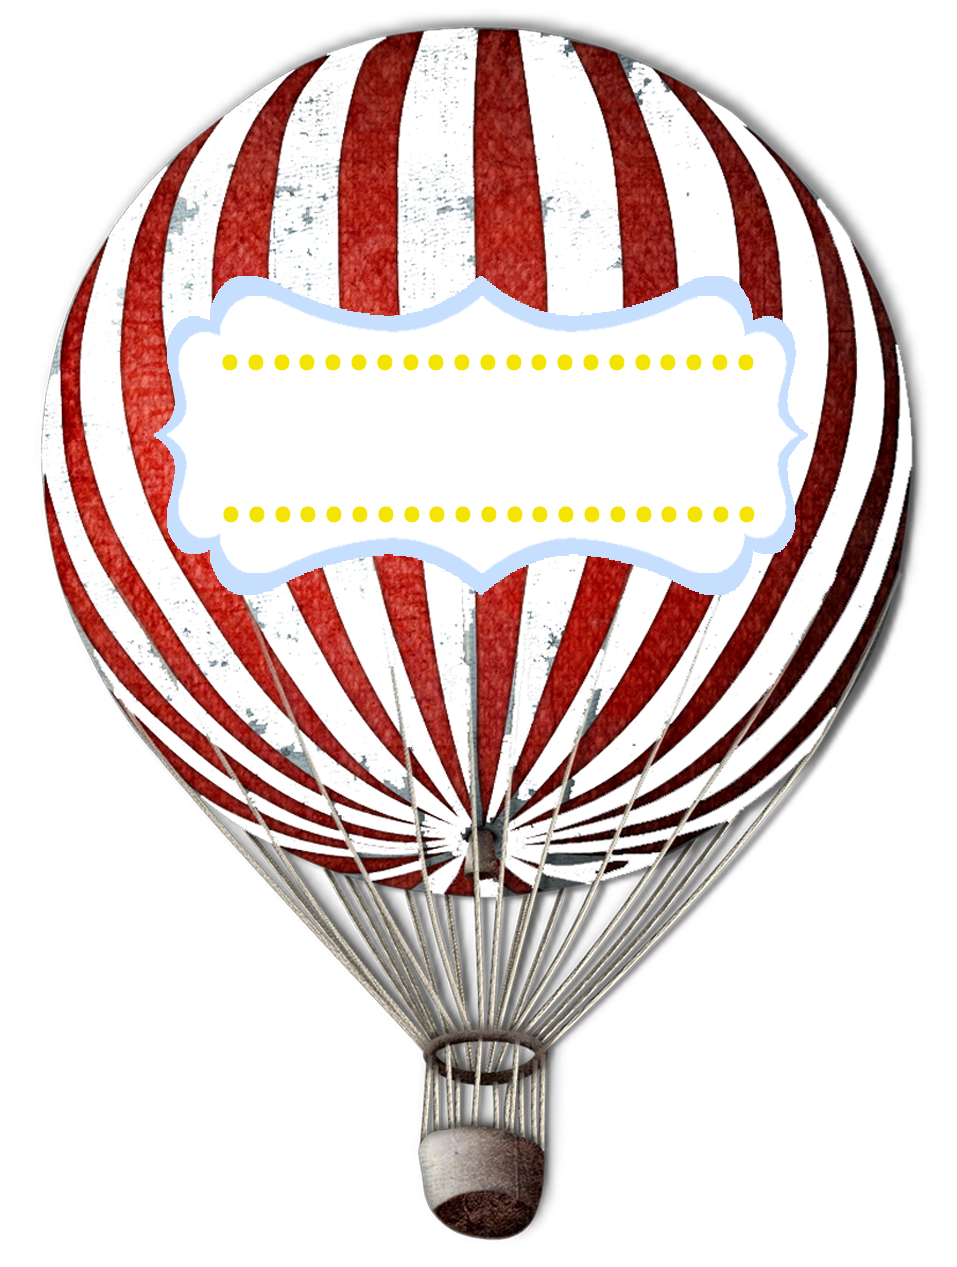 1000+ images about hot air balloon on Pinterest.